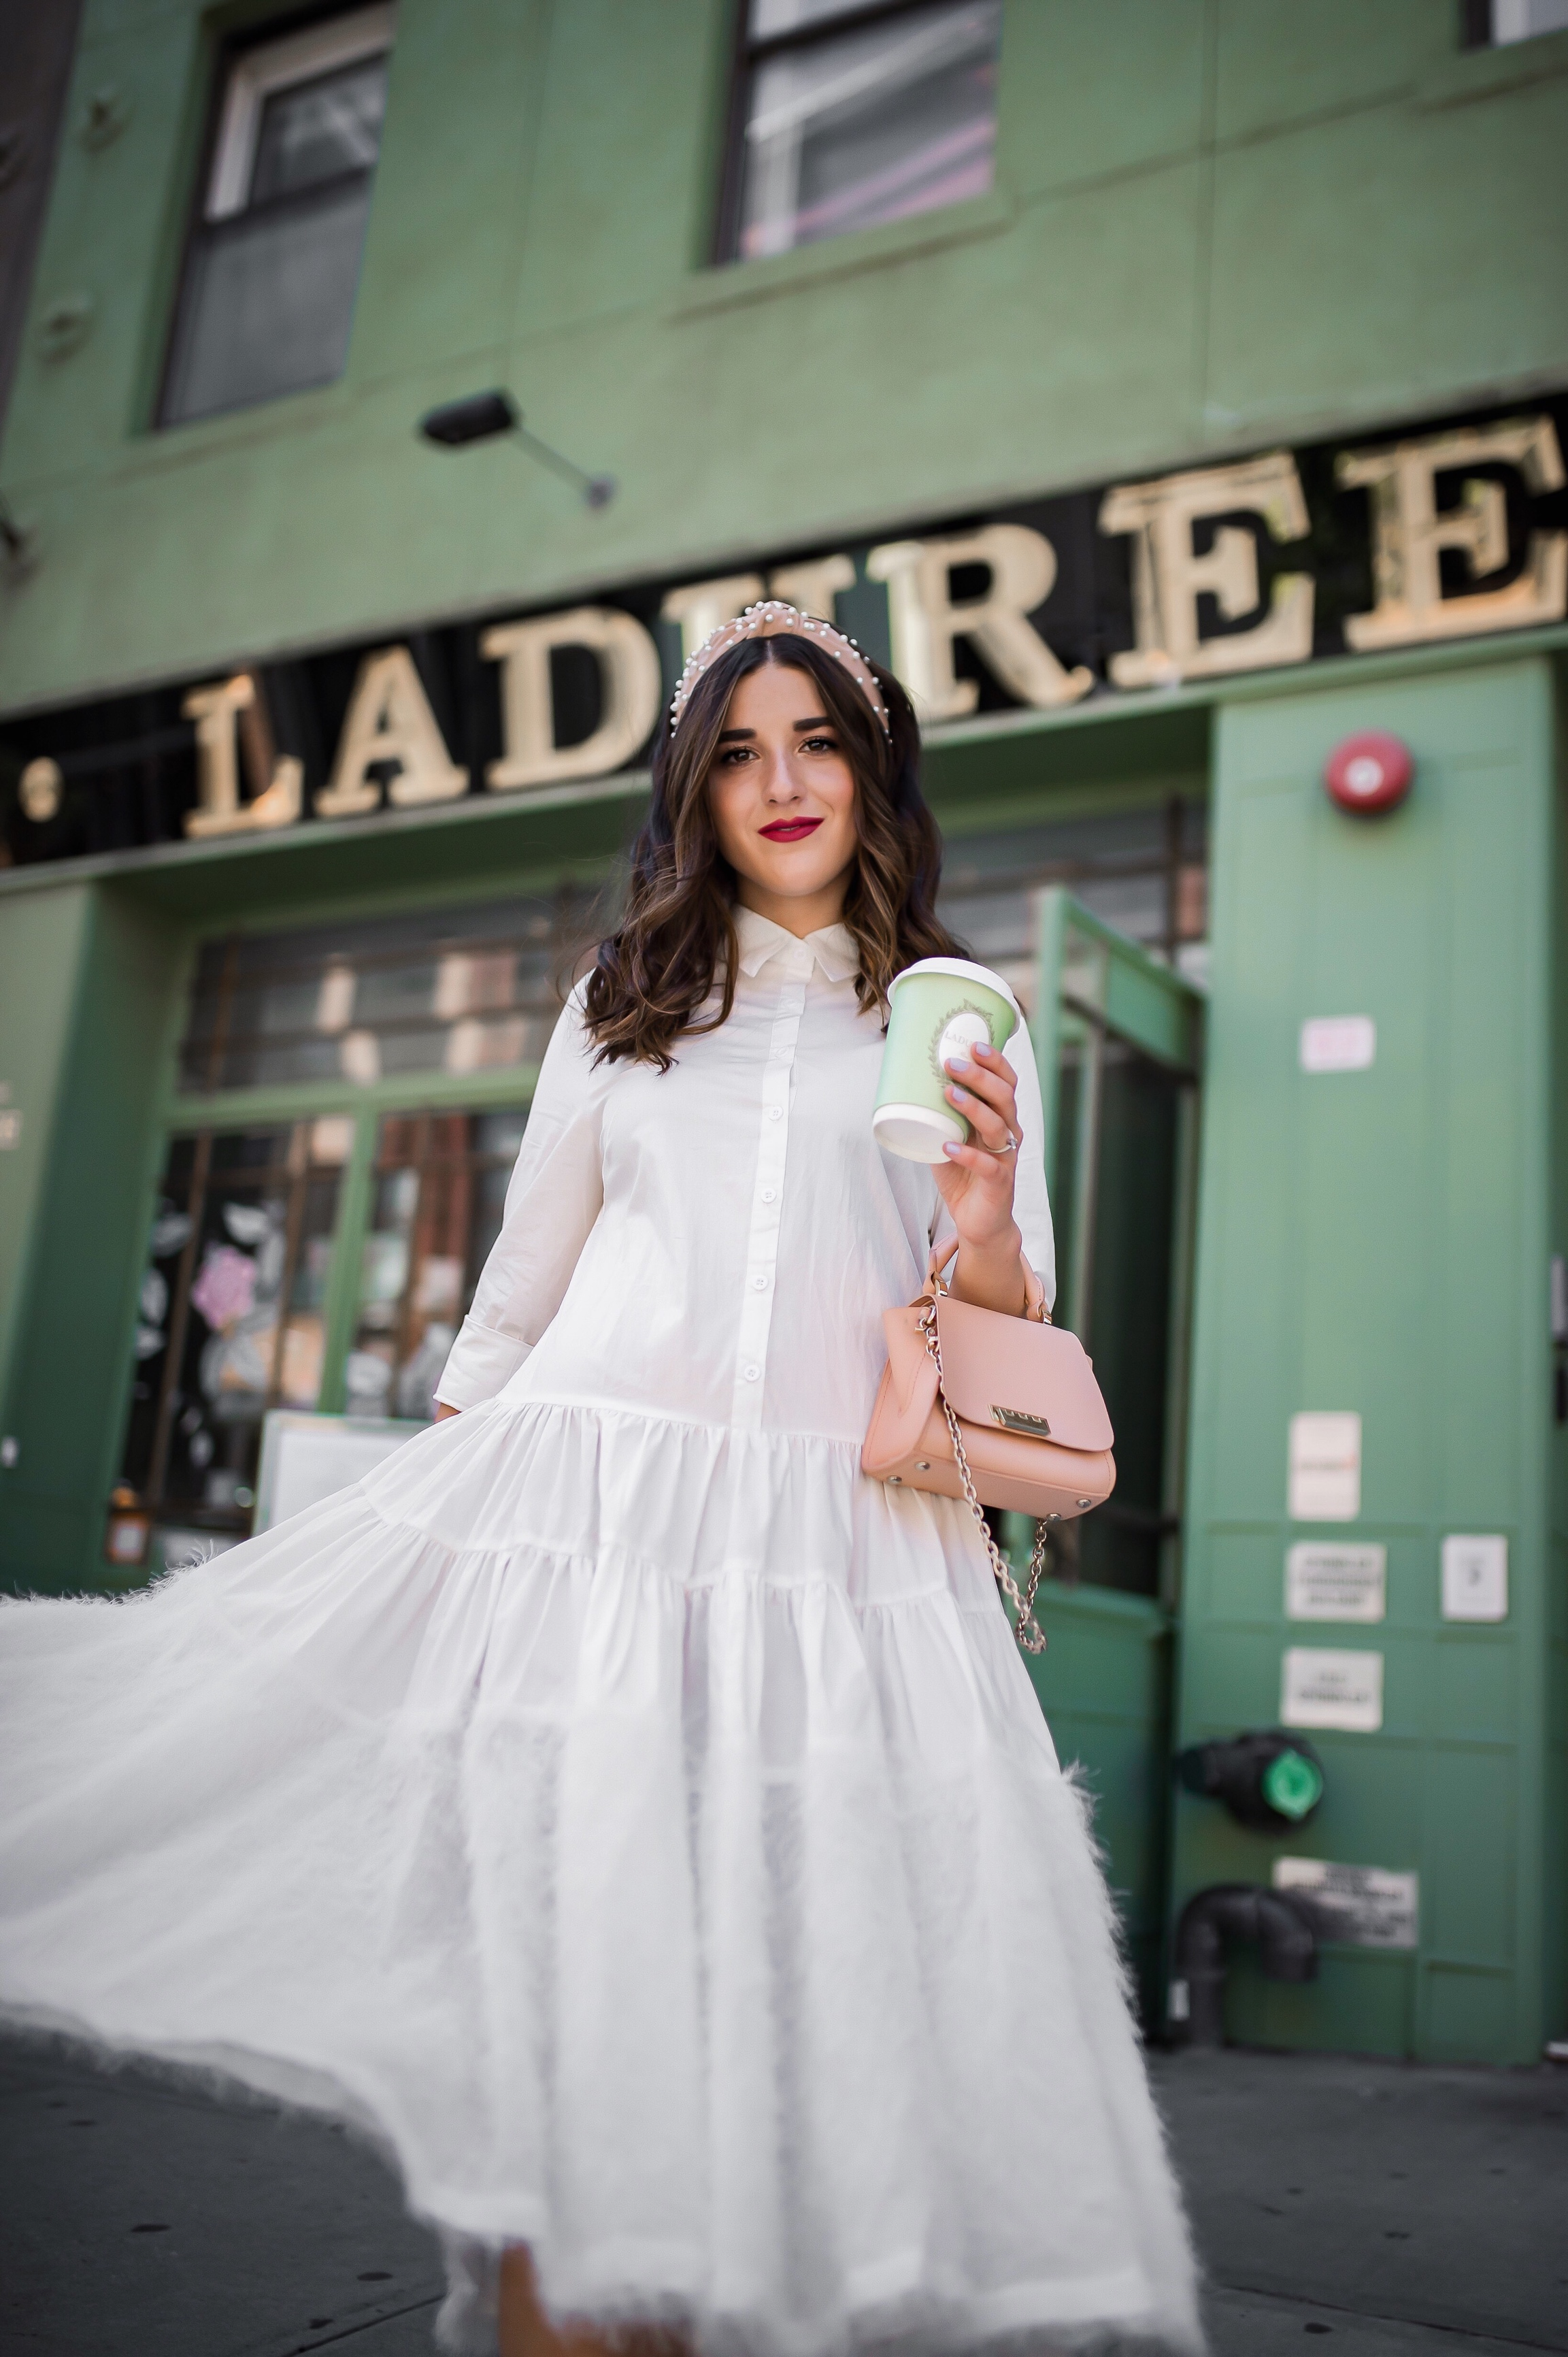 Debunking 8 Common Misconceptions About Fashion Bloggers White Midi Dress Pink Accessories Esther Santer Fashion Blog NYC Street Style Blogger Outfit OOTD Trendy Shopping Girl Headband How To Wear Pink Zac Posen Bag La Duree Photoshoot Jeweled Sandals.JPG